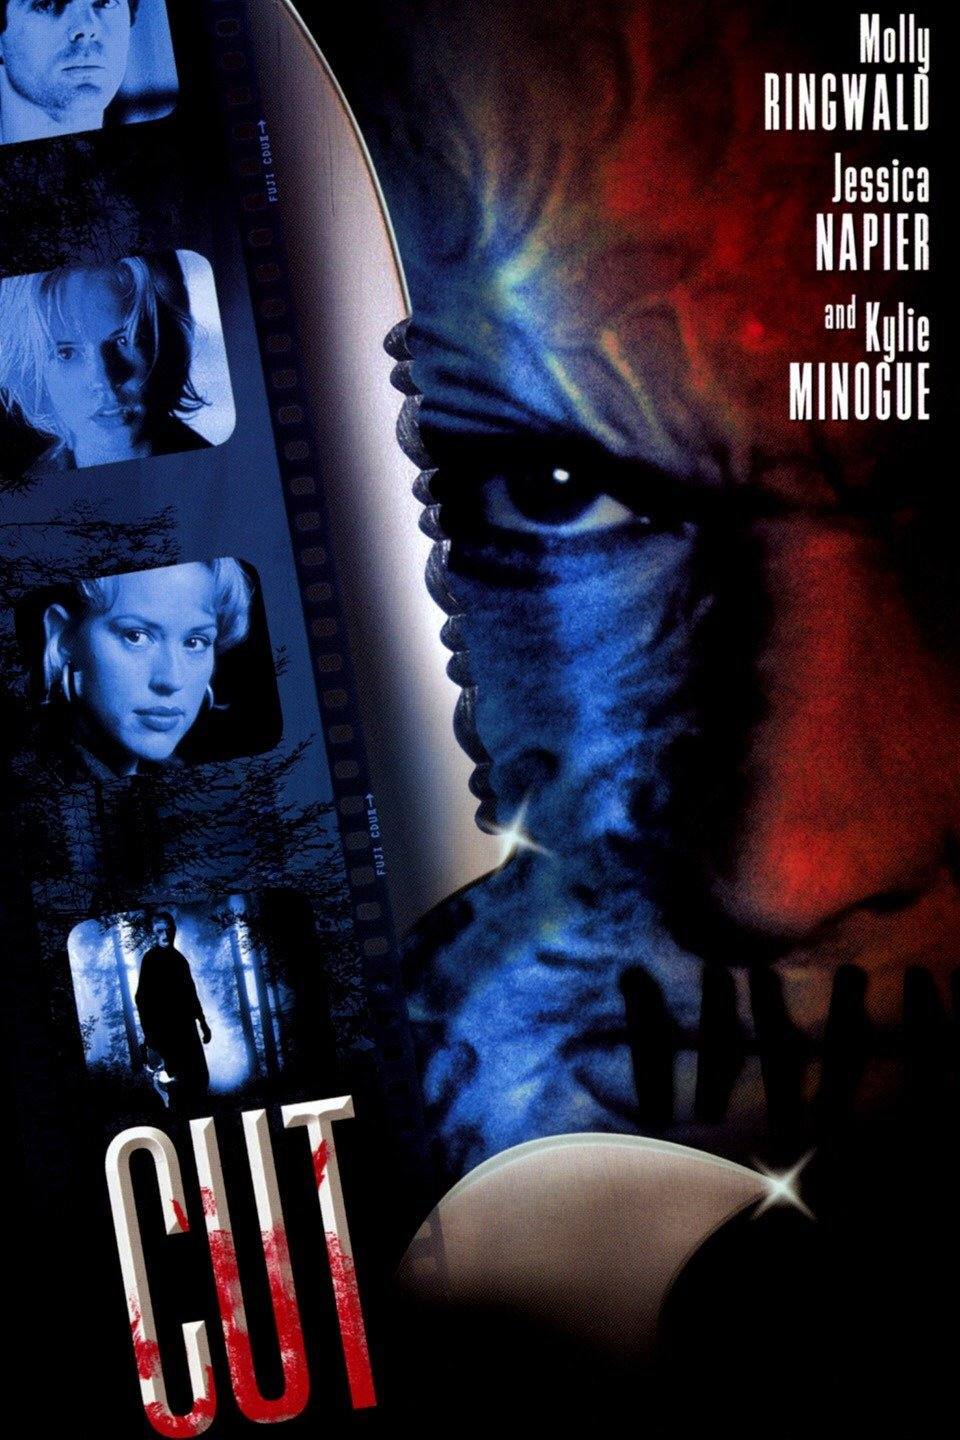 28. Cut (2000) - A meta Post-Scream slasher from Australia with a Freddy inspired killer. Is it great? No. Did we have fun with the Craven obsessed script? Yes.